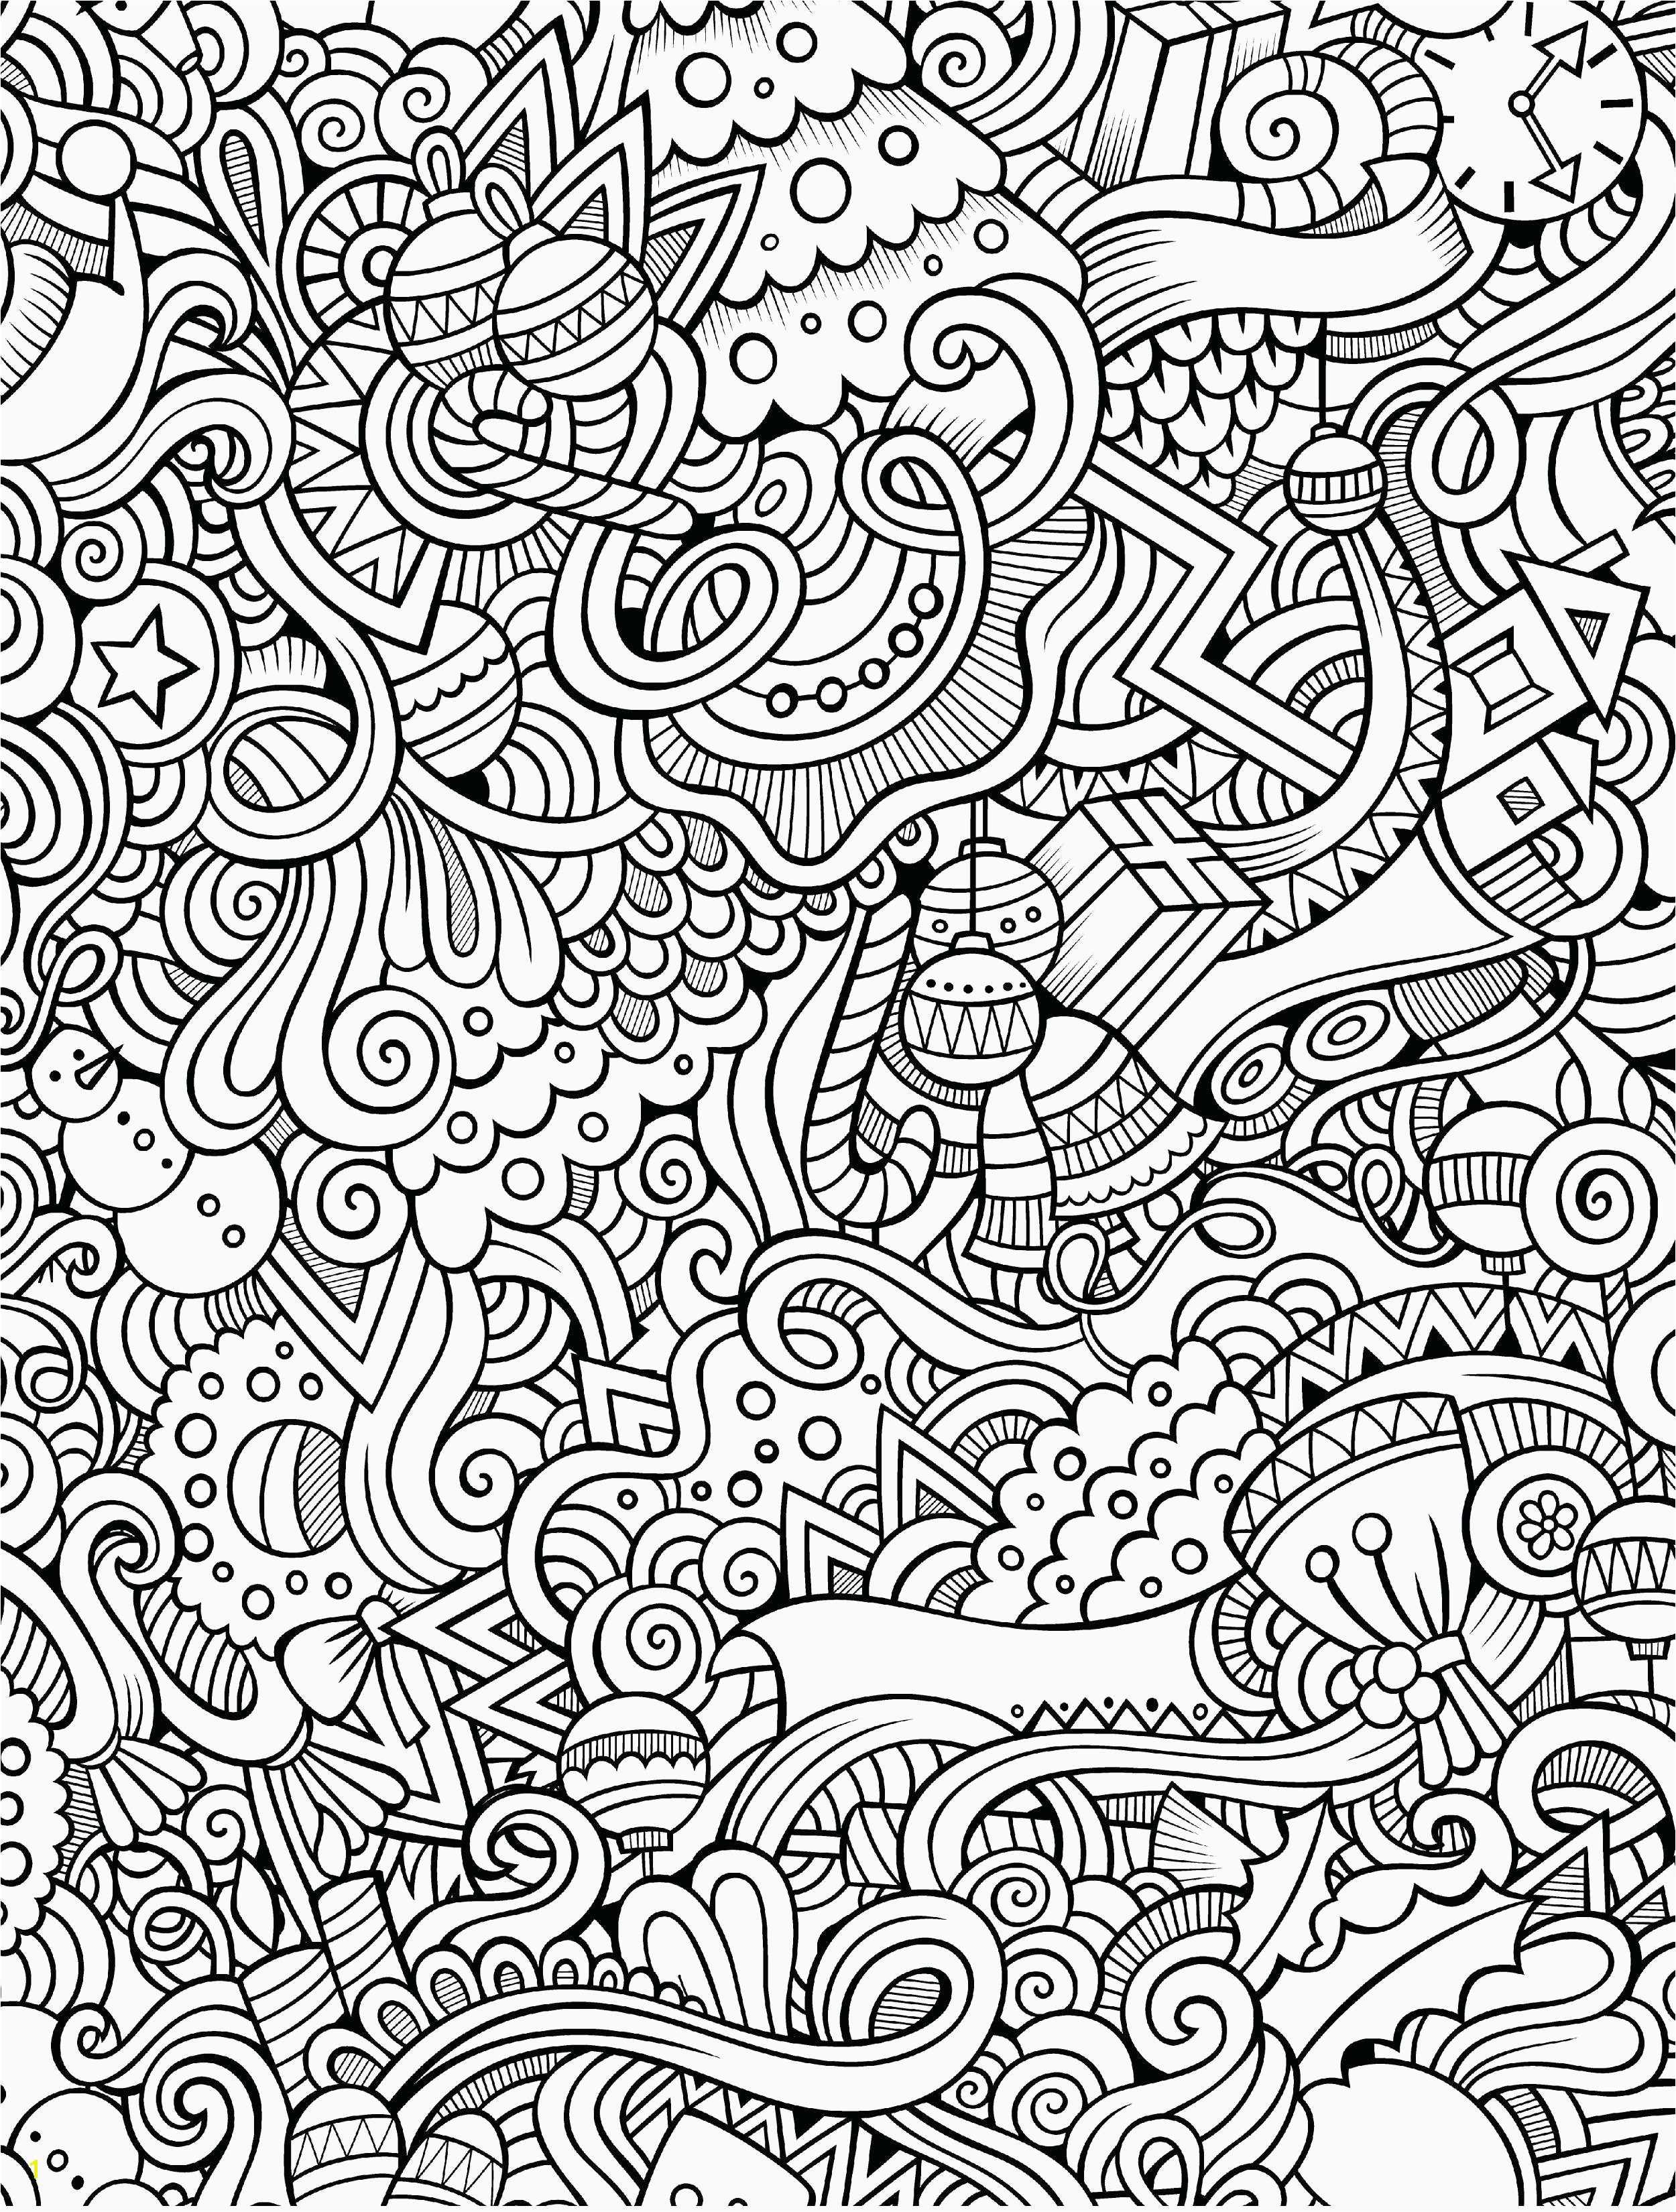 Free Printable Coloring Pages for Adults ly Unique Awesome Coloring Page for Adult Od Kids Simple